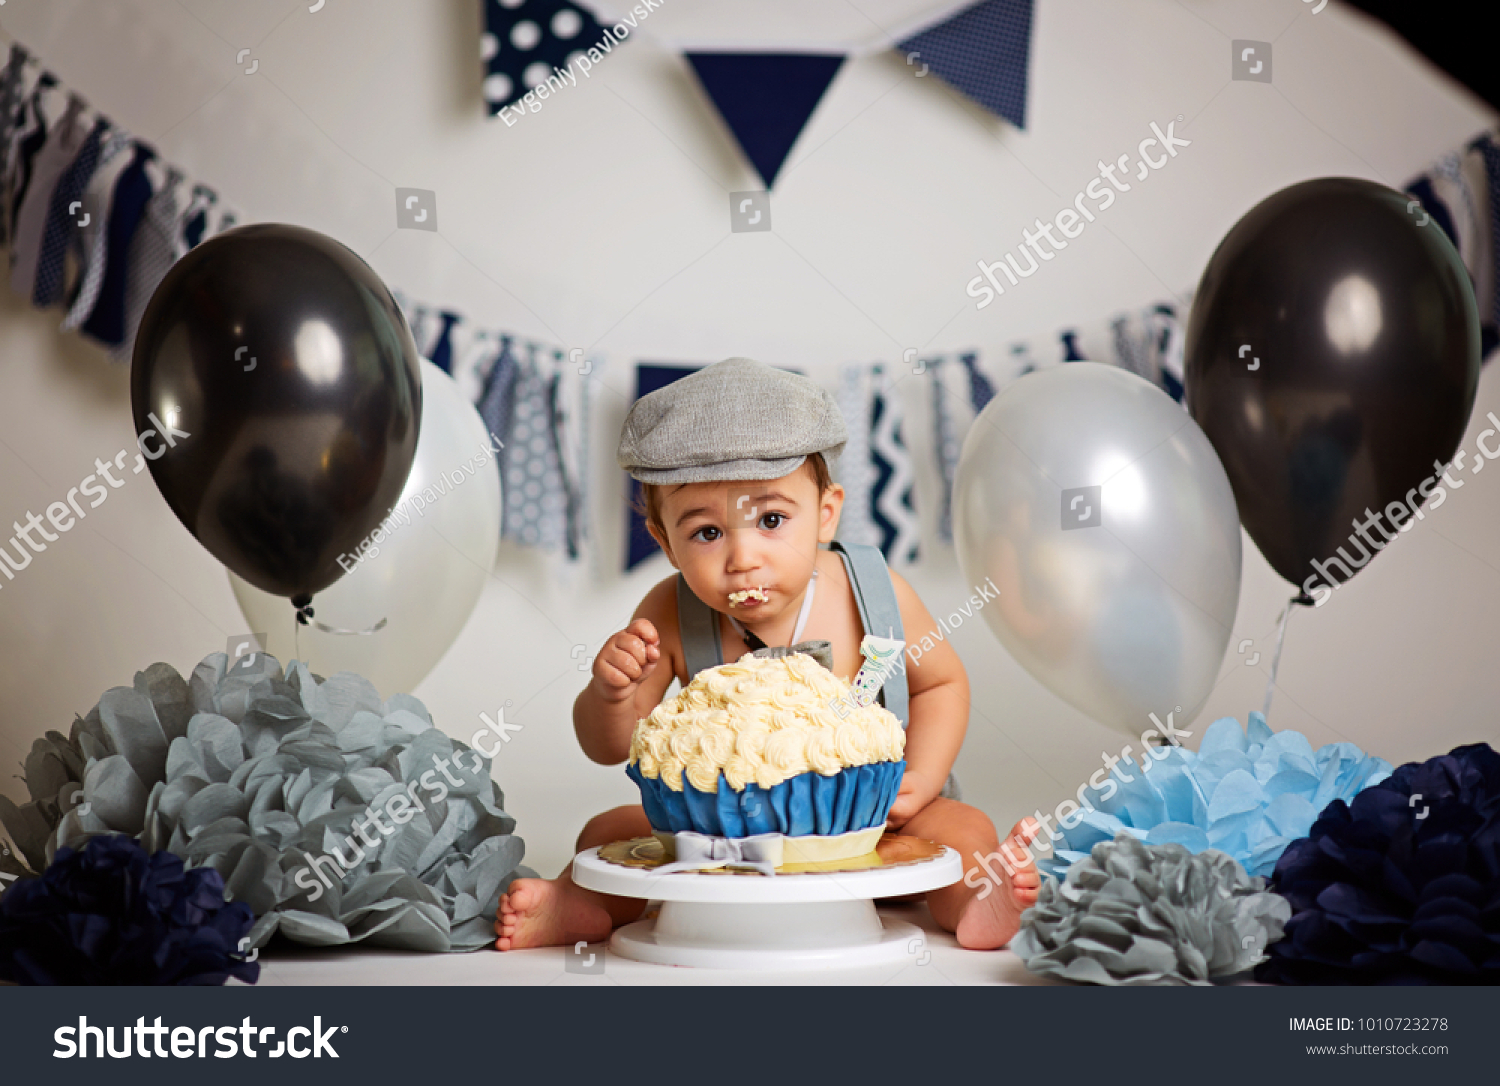 Pleasant Infant Boys First Birthday Cake Smash Stock Photo Edit Now Funny Birthday Cards Online Inifofree Goldxyz